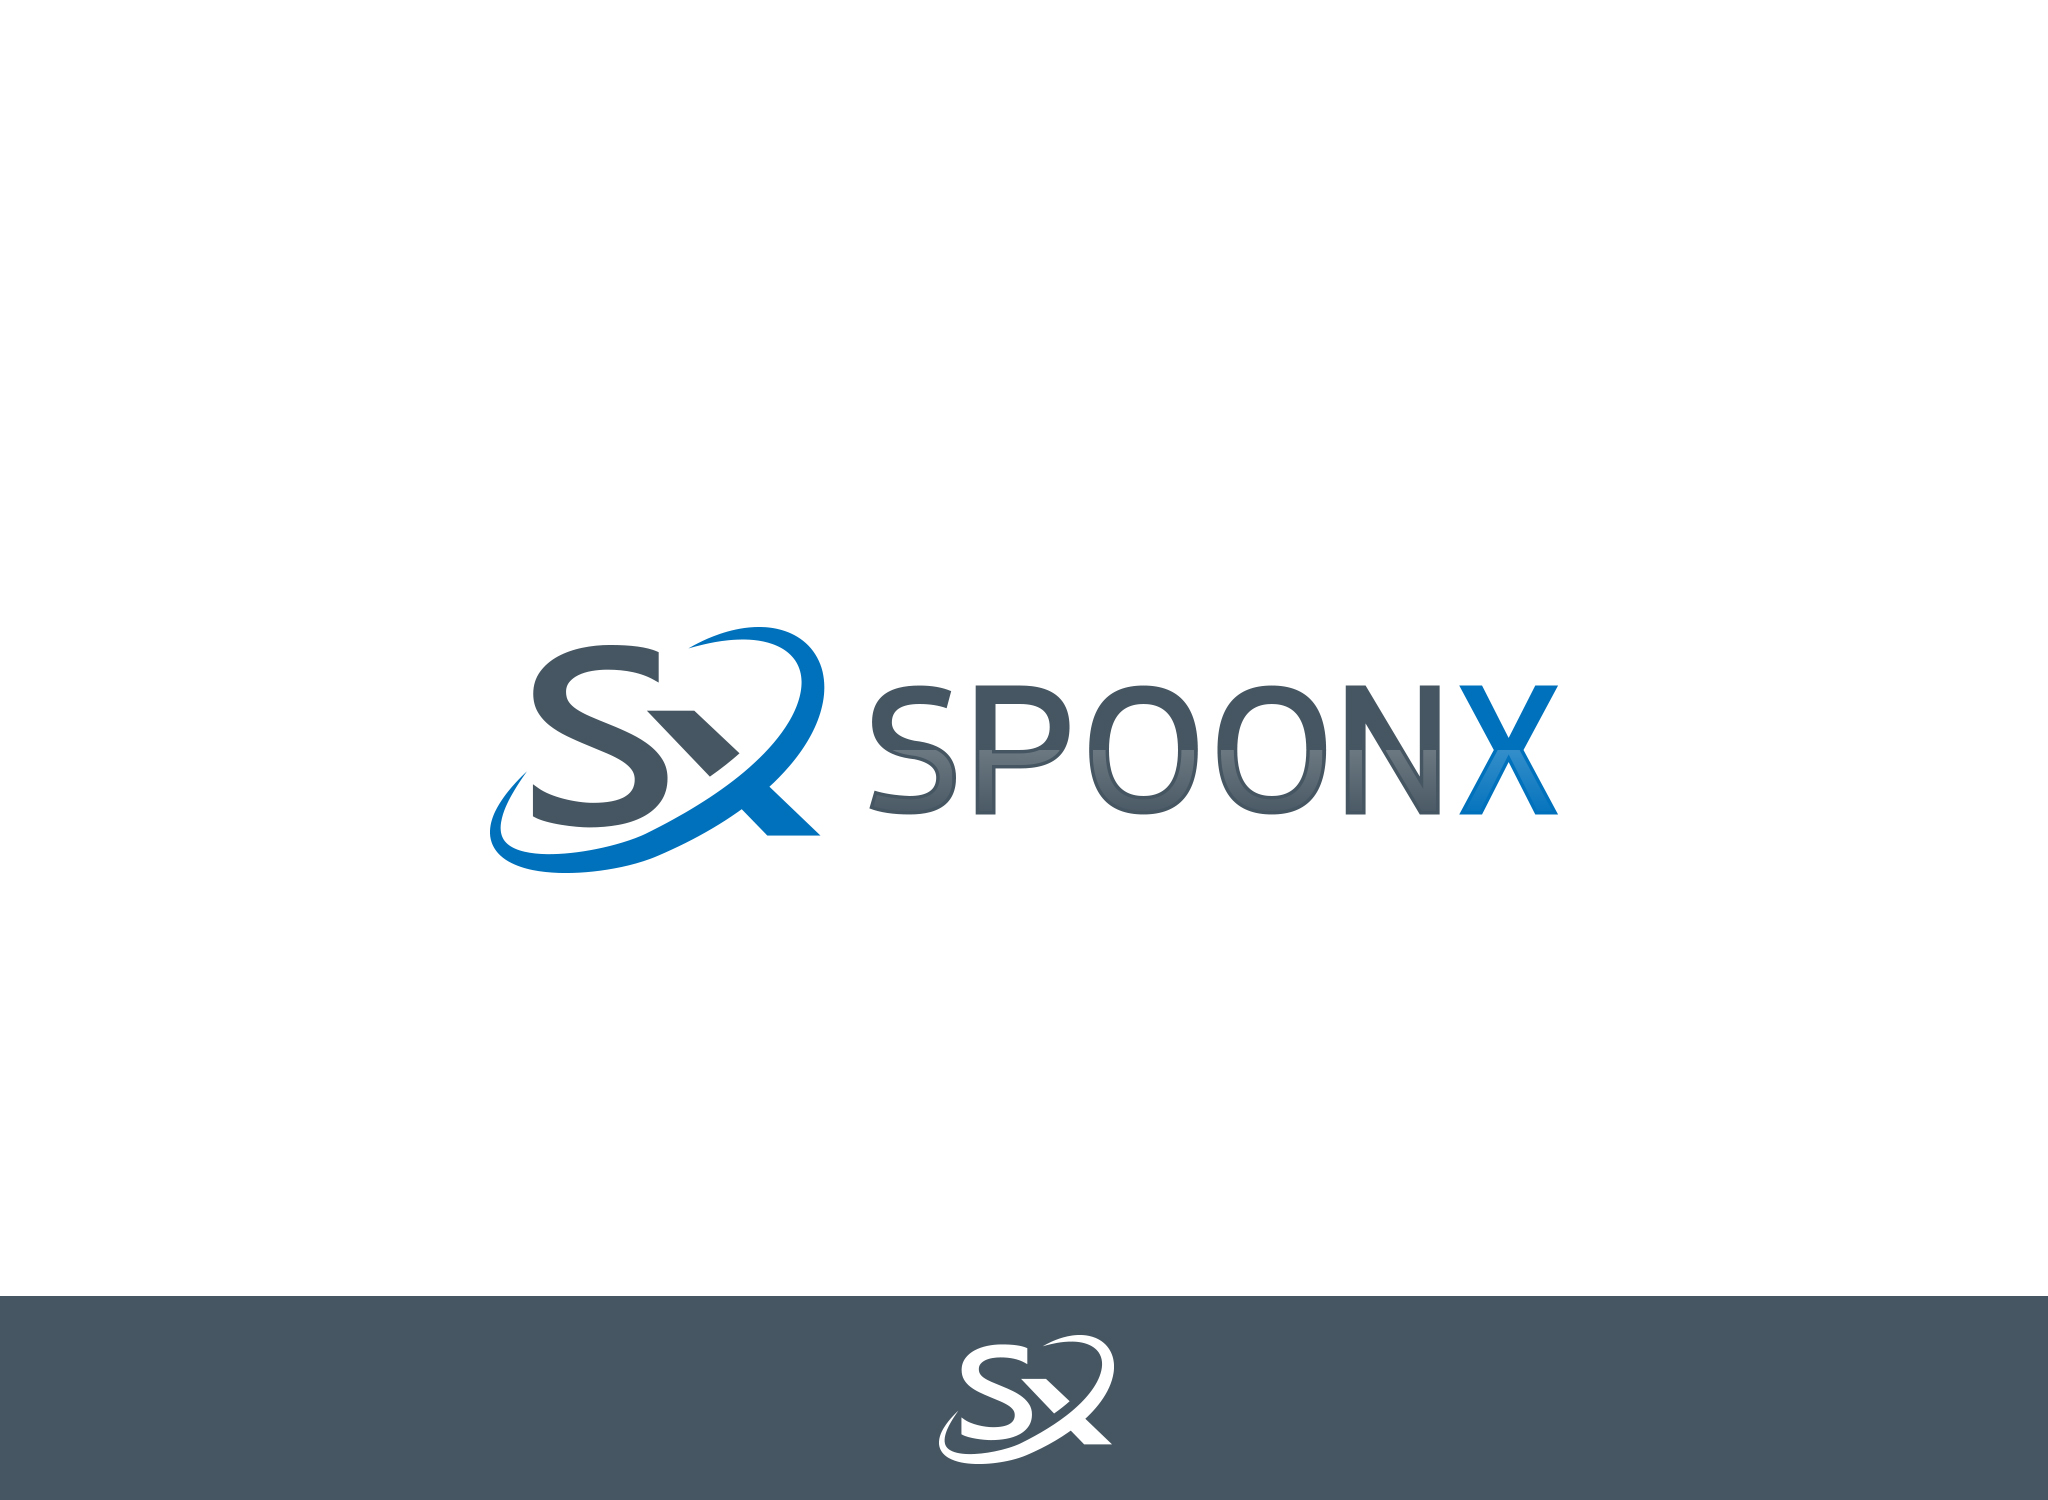 Logo Design by Avinu Designs - Entry No. 111 in the Logo Design Contest Captivating Logo Design for SpoonX.